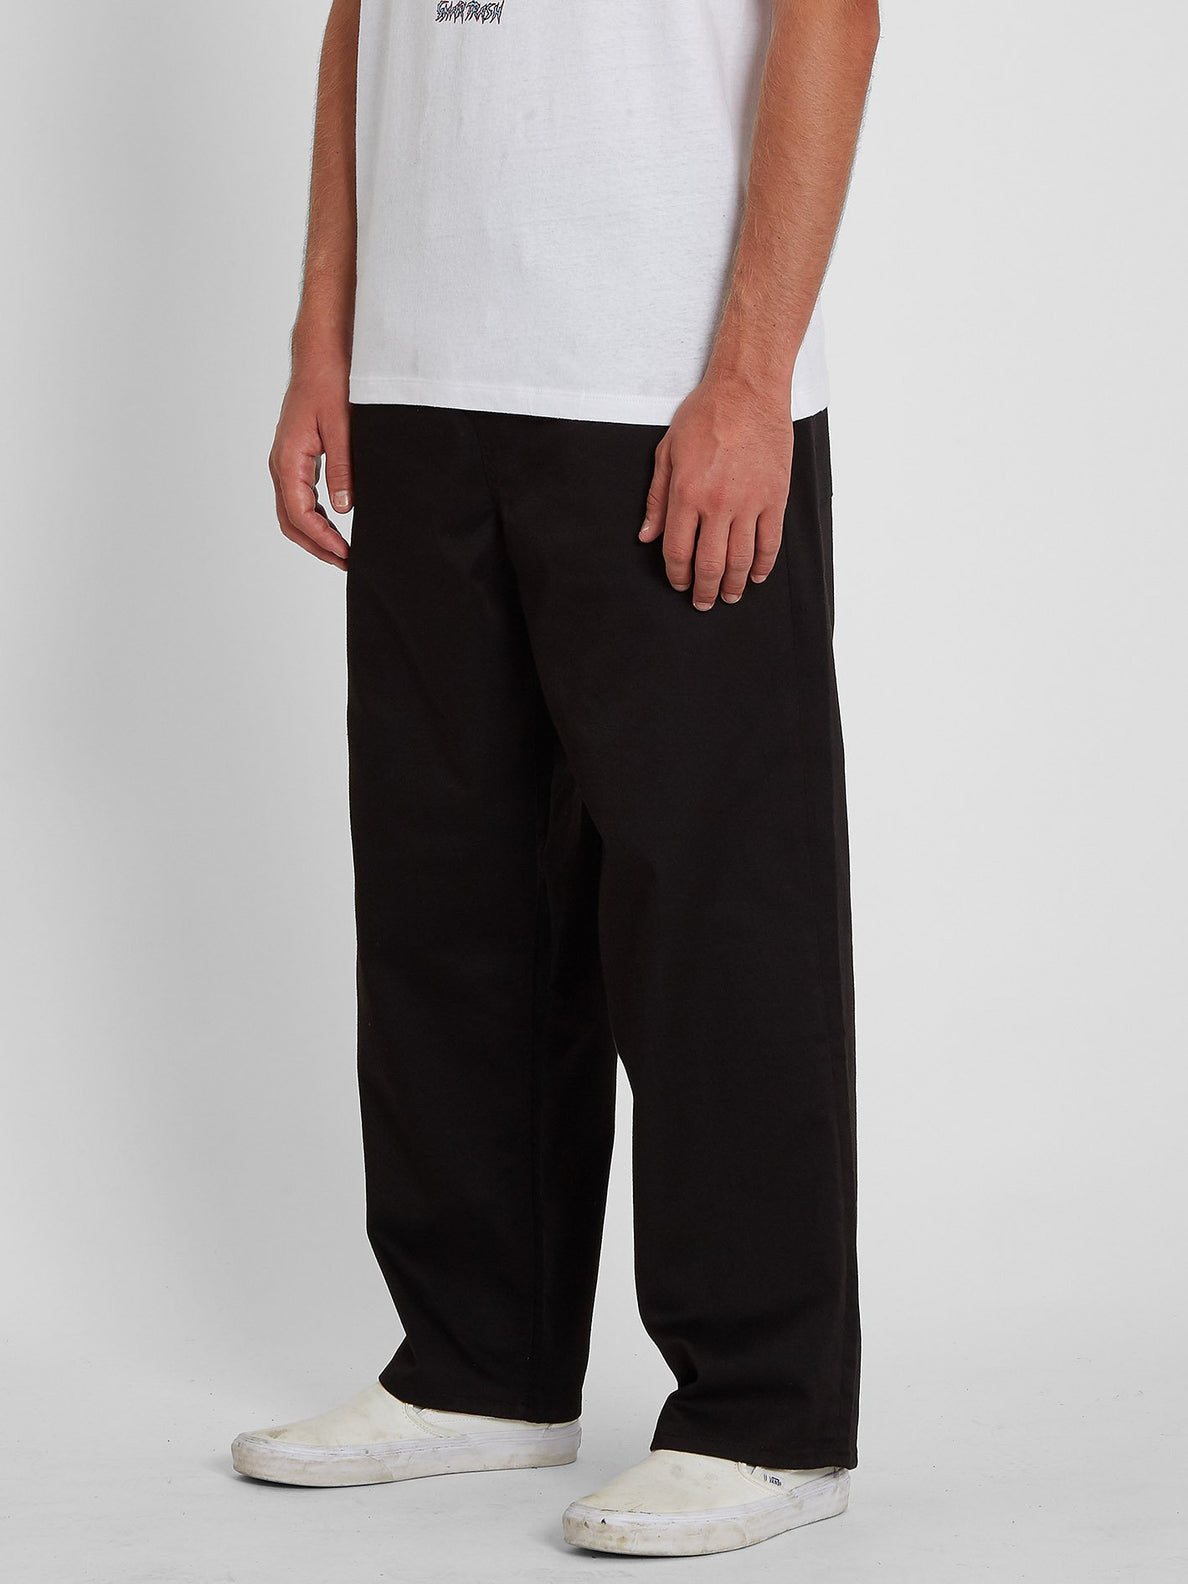 Outer Spaced Solid Pant - BLACK (A1242004_BLK) [1]